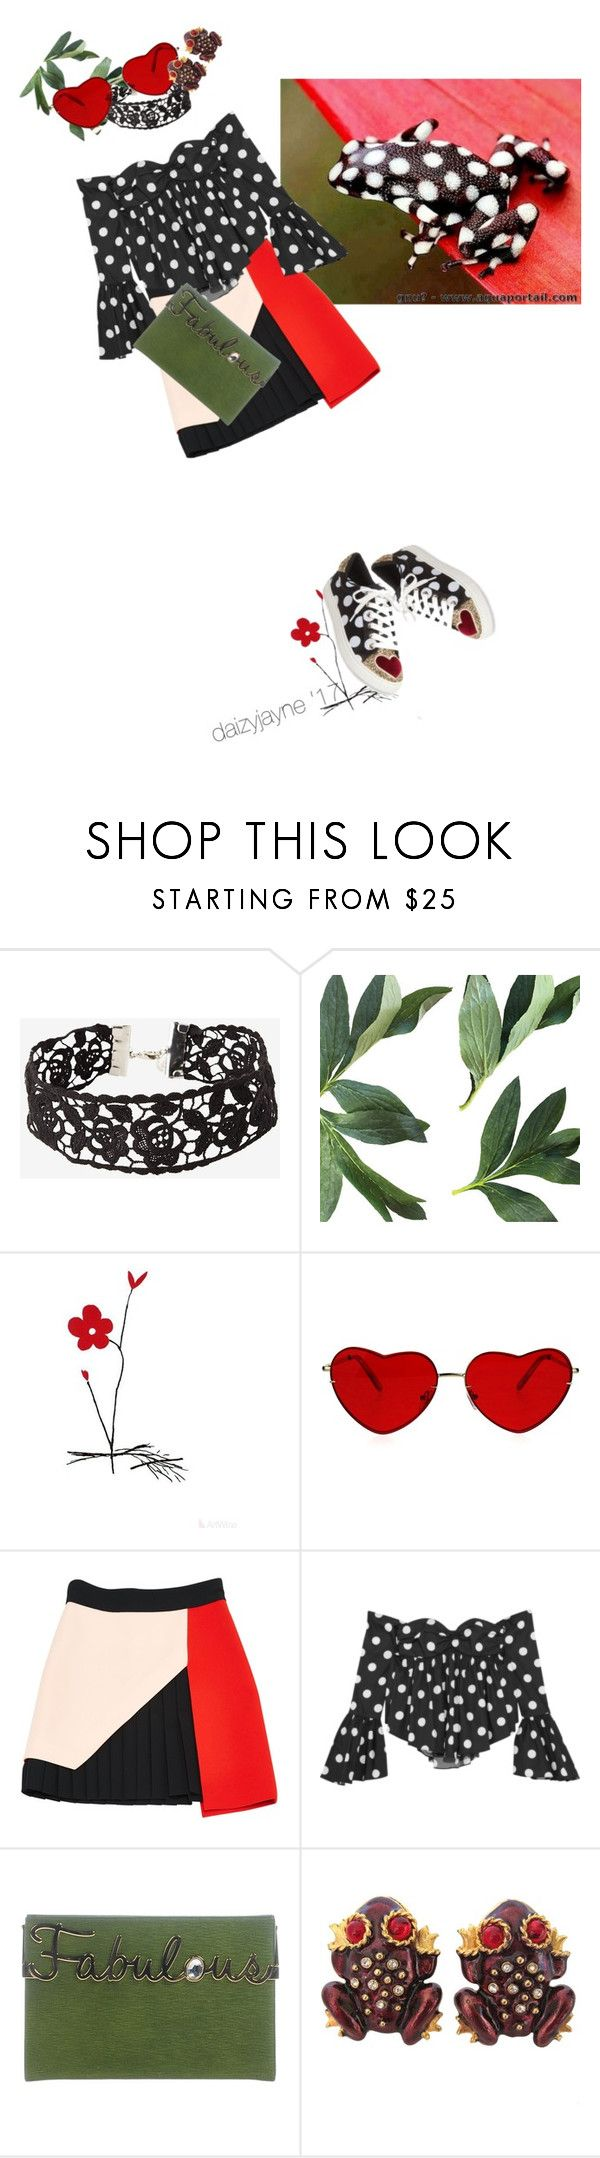 """""""Date with a frog"""" by daizyjayne ❤ liked on Polyvore featuring FAUSTO PUGLISI, Caroline Constas, Charlotte Olympia, Gerard Yosca, Betsey Johnson, contestentry and MastersOfMimicry"""